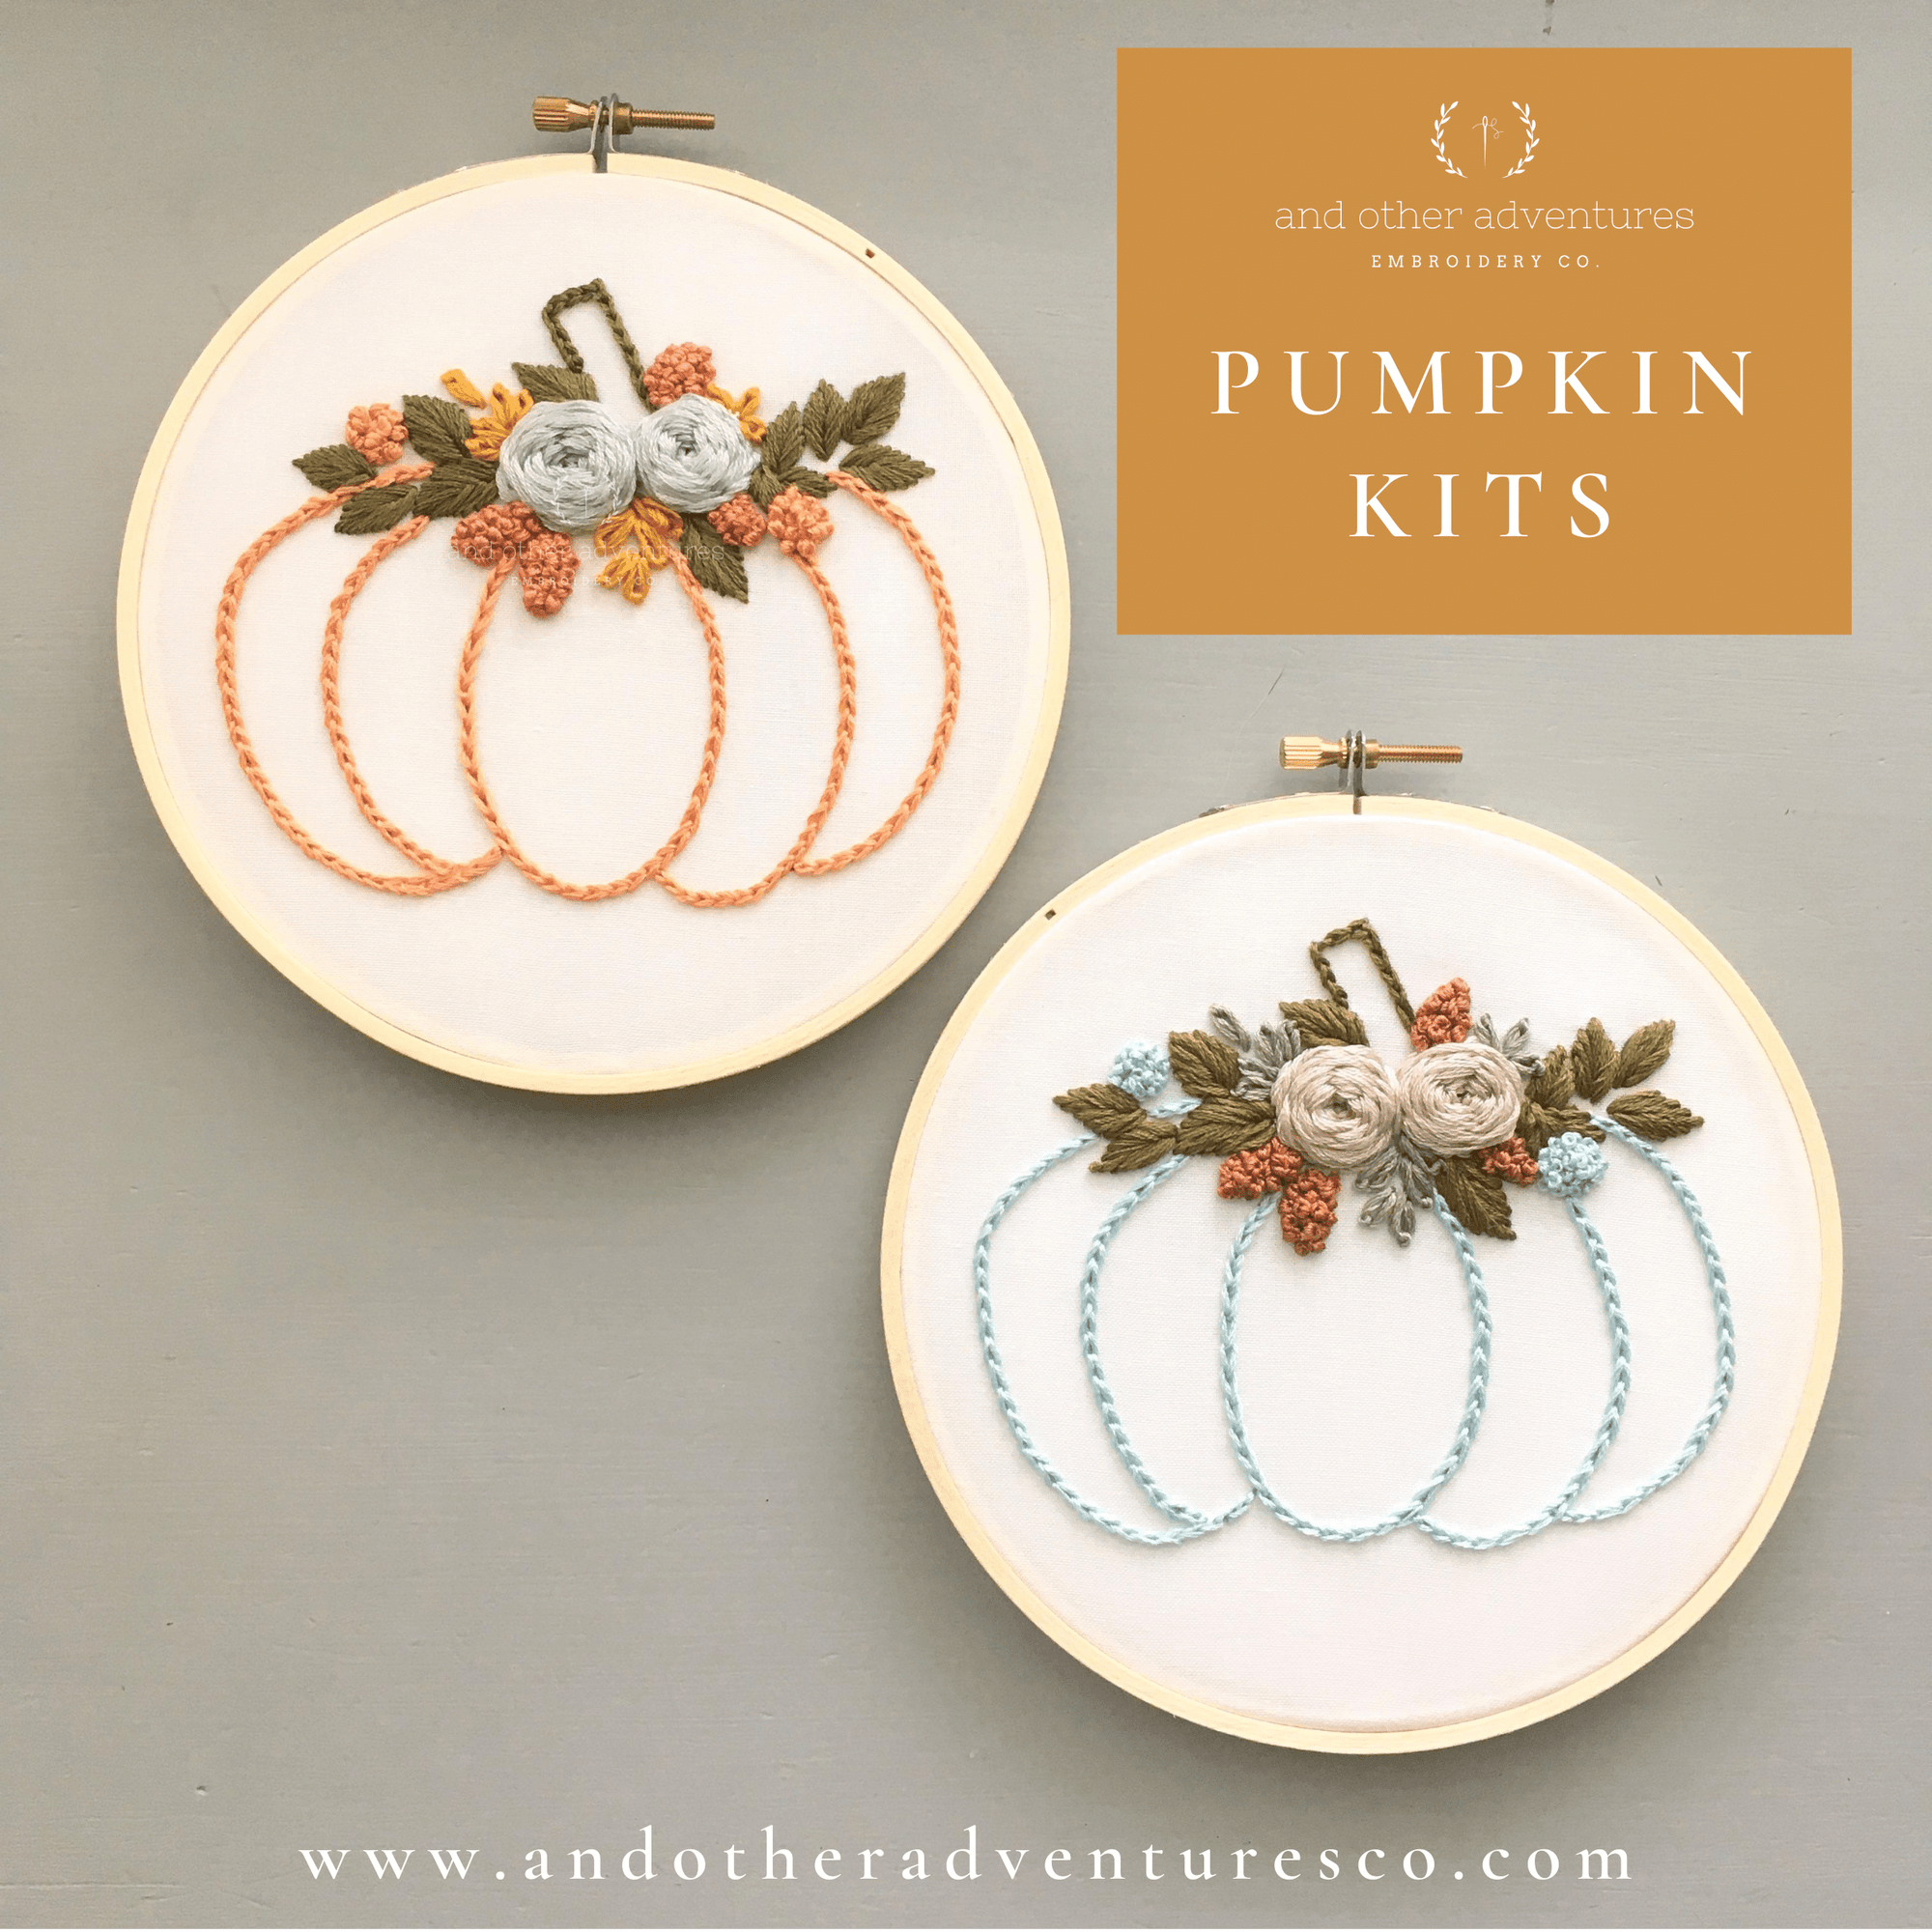 Hand Embroidered Fall Floral Pumpkin DIY Kits | And Other Adventures Embroidery co